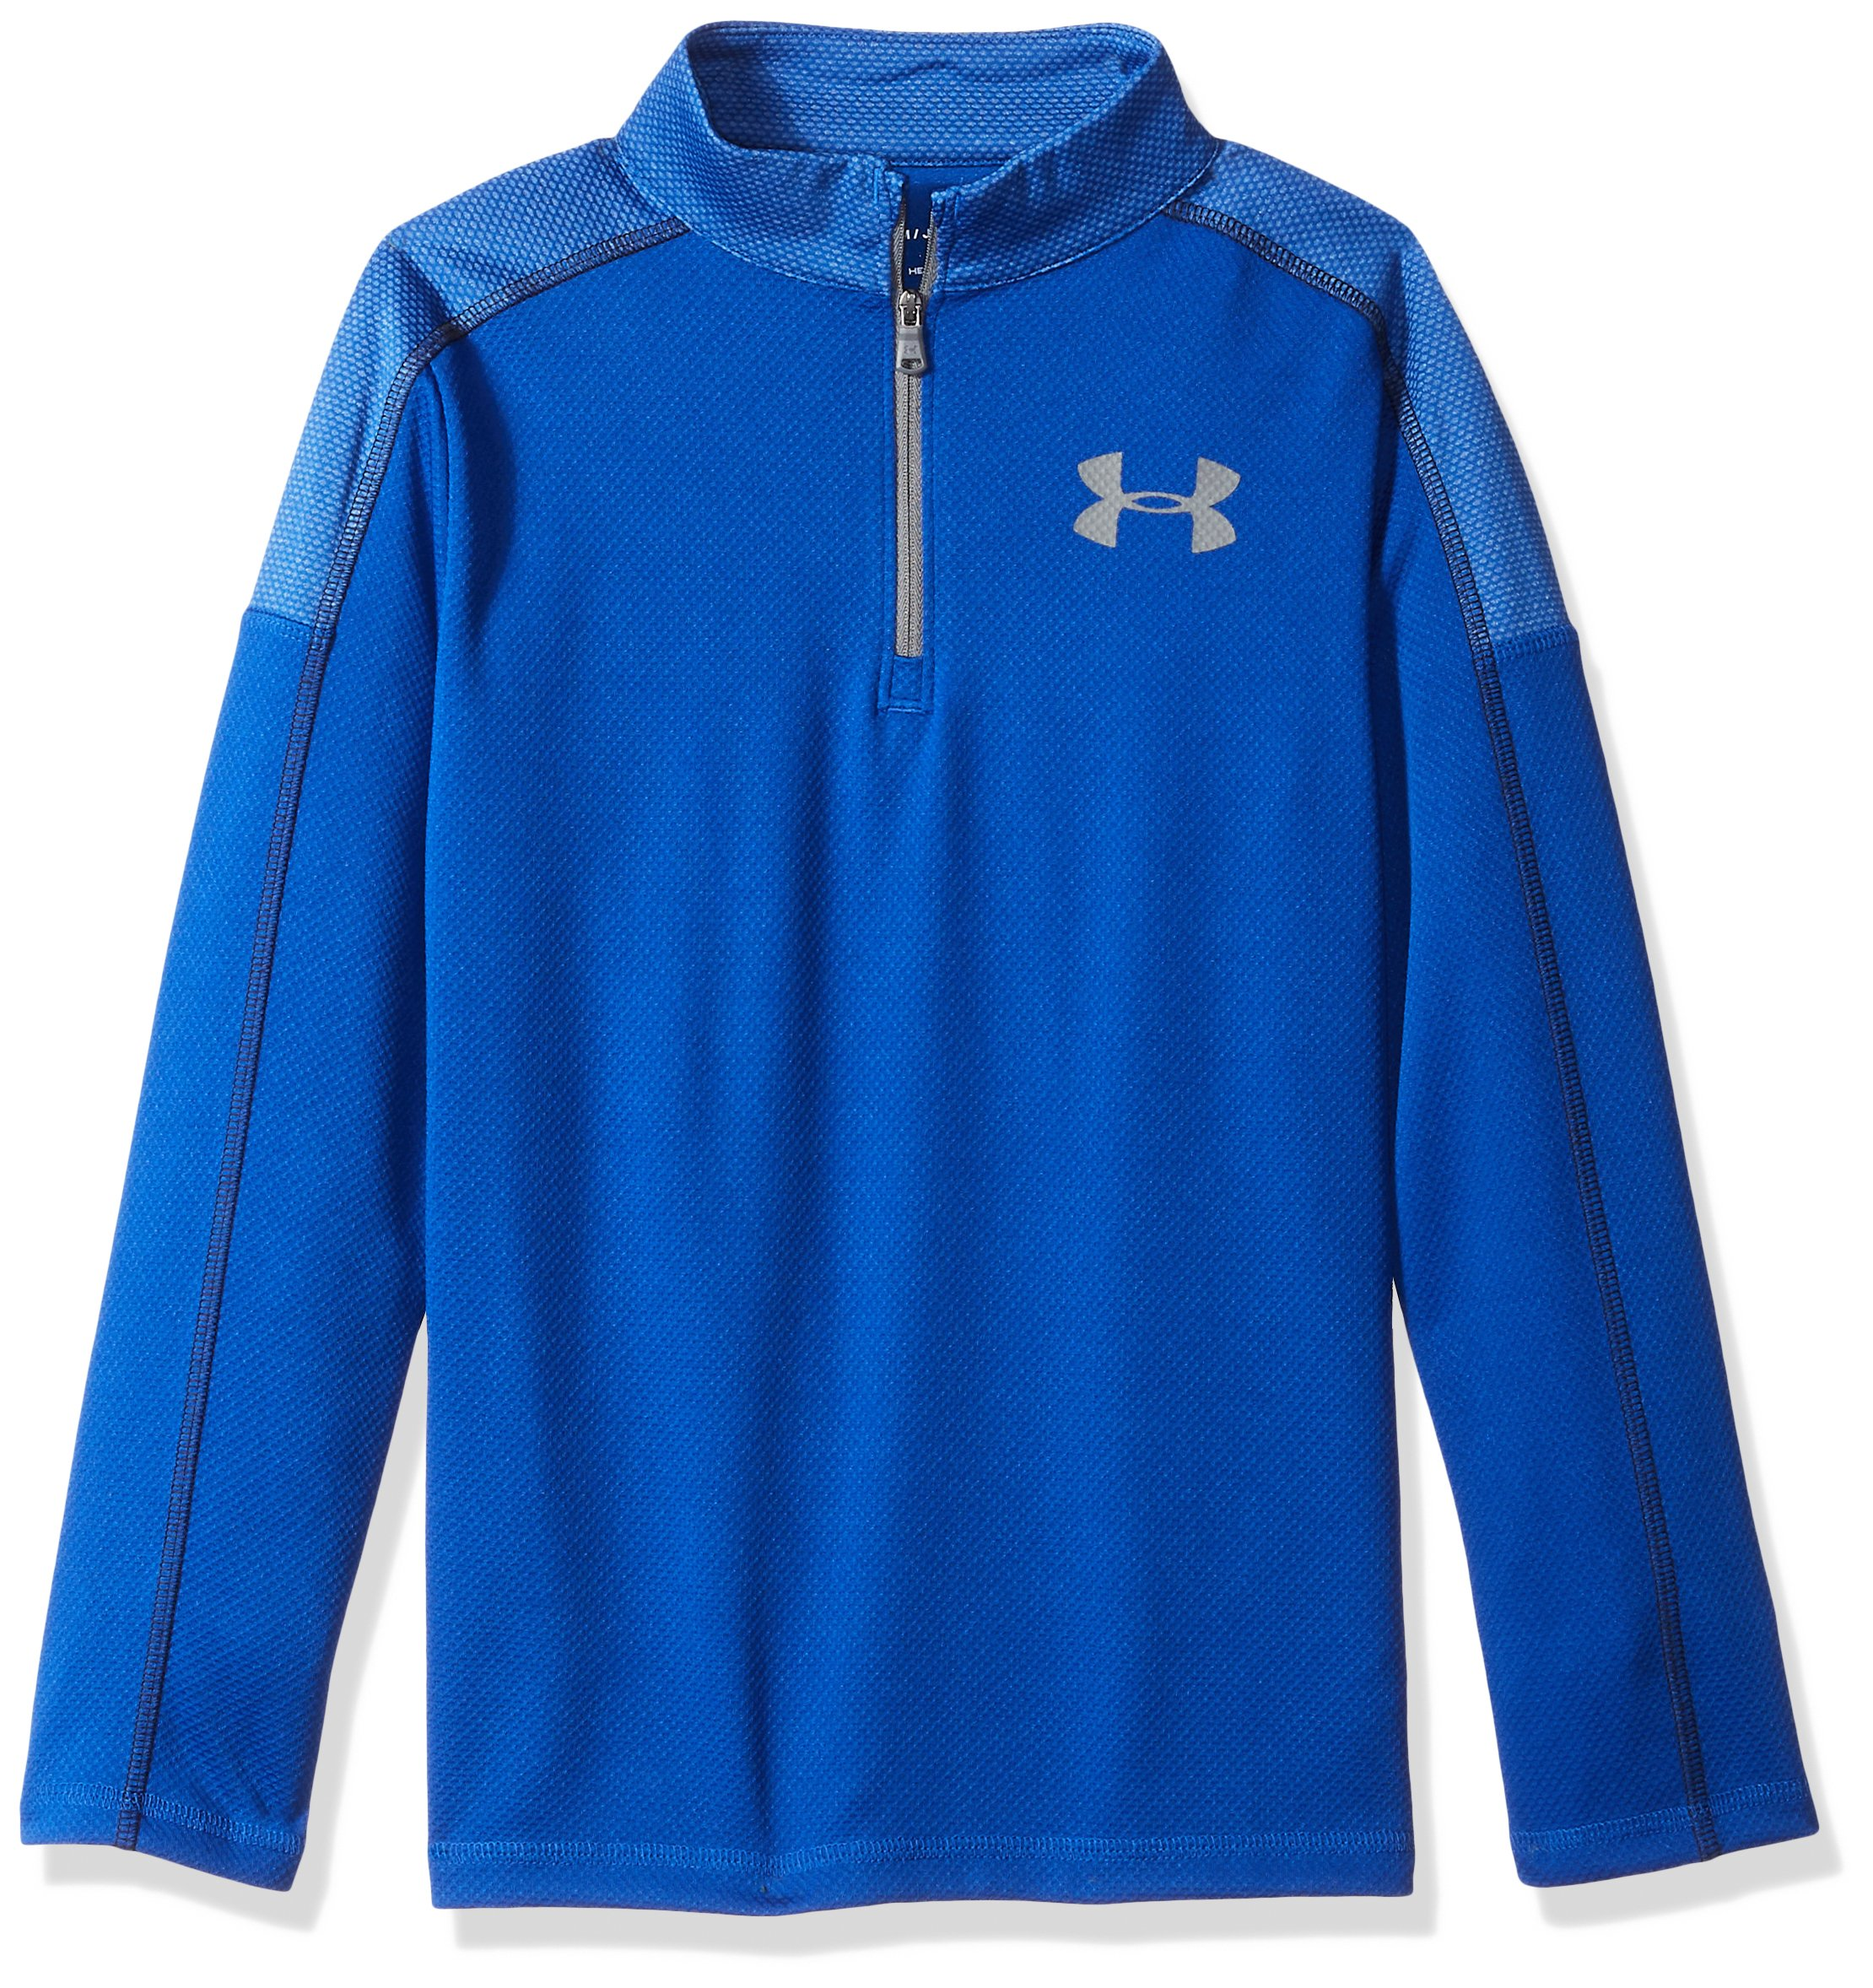 Under Armour Boys Tech 1/2 Zip, Royal (400)/Graphite, Youth X-Large by Under Armour